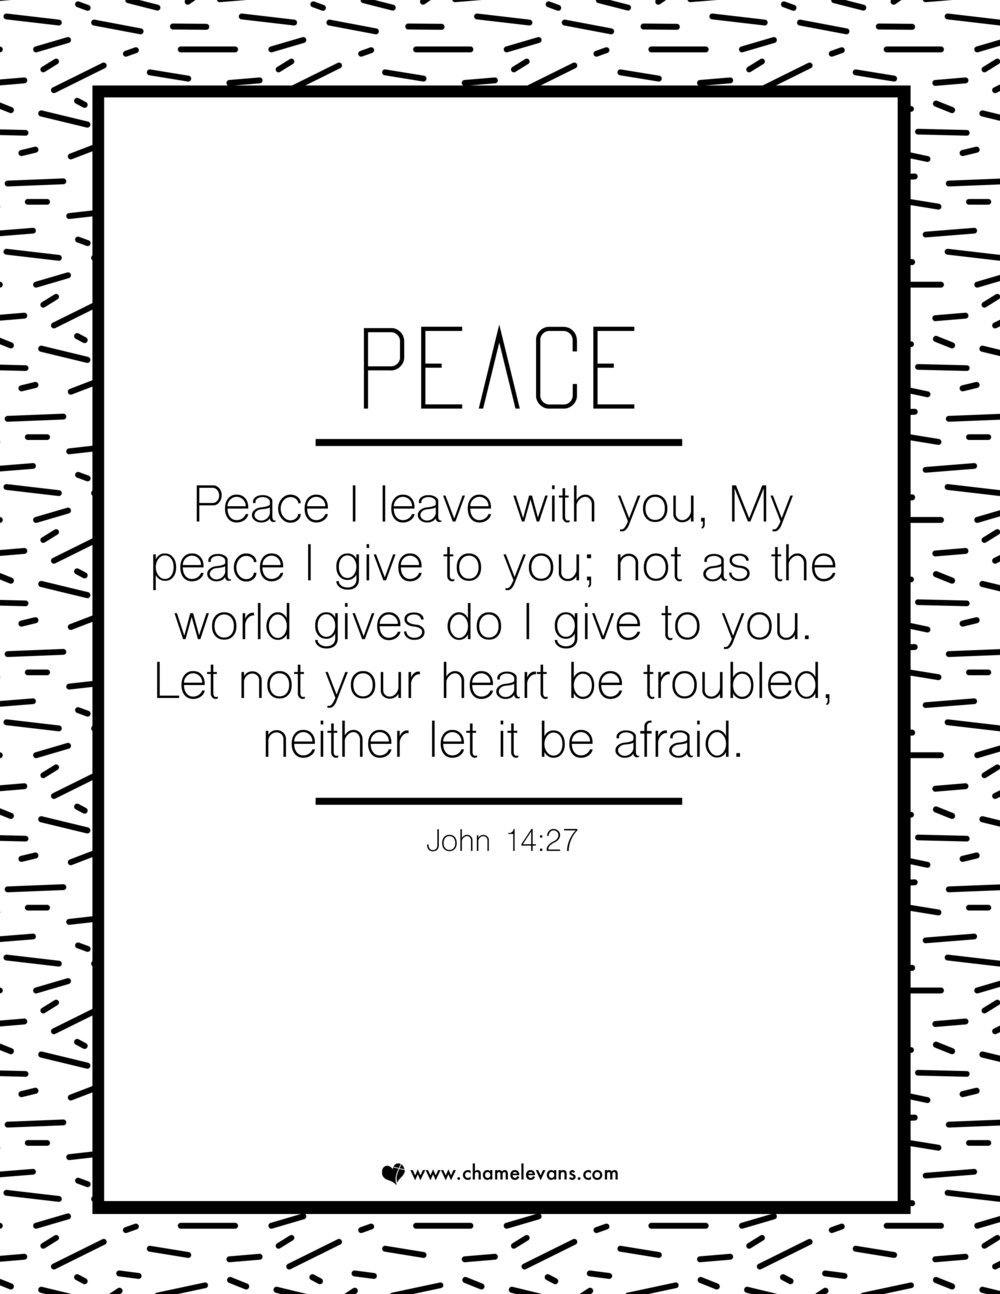 FREE SCRIPTURE ART PRINTABLES - peace - STAND IN GOD'S TRUTH | WWW.CHAMELEVANS.COM